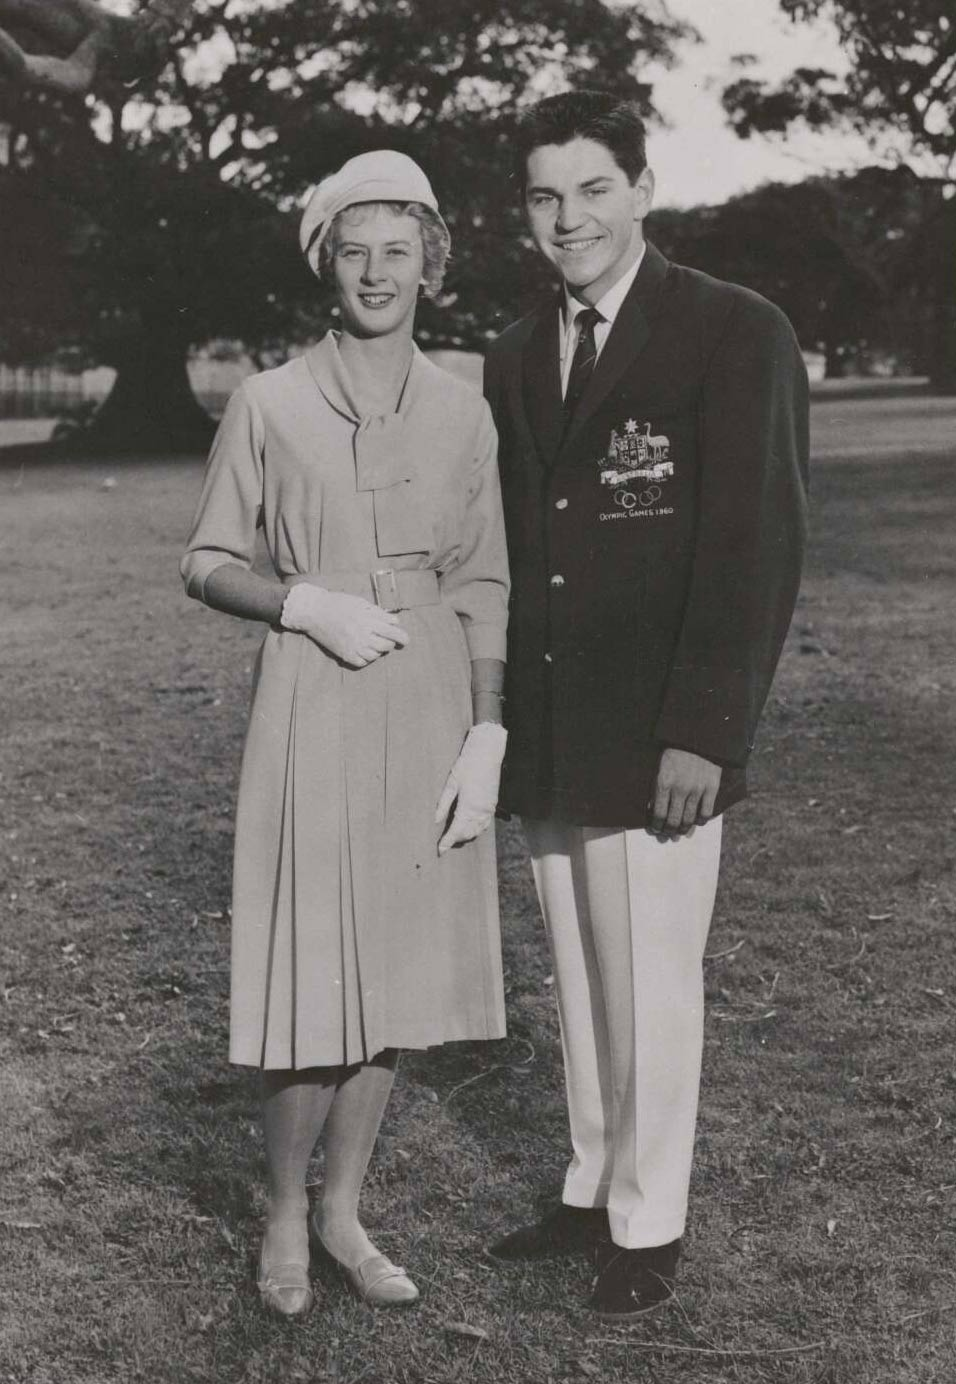 Black and white portrait showing a woman dressed in a knee-length dress and wearing a soft hat, gloves and shoes. A man stands to her right. He wears a dark blazer with an Australian coat of arms on the right breast pocket. He is also wearing a dark necktie, light-coloured trousers and dark shoes. - click to view larger image